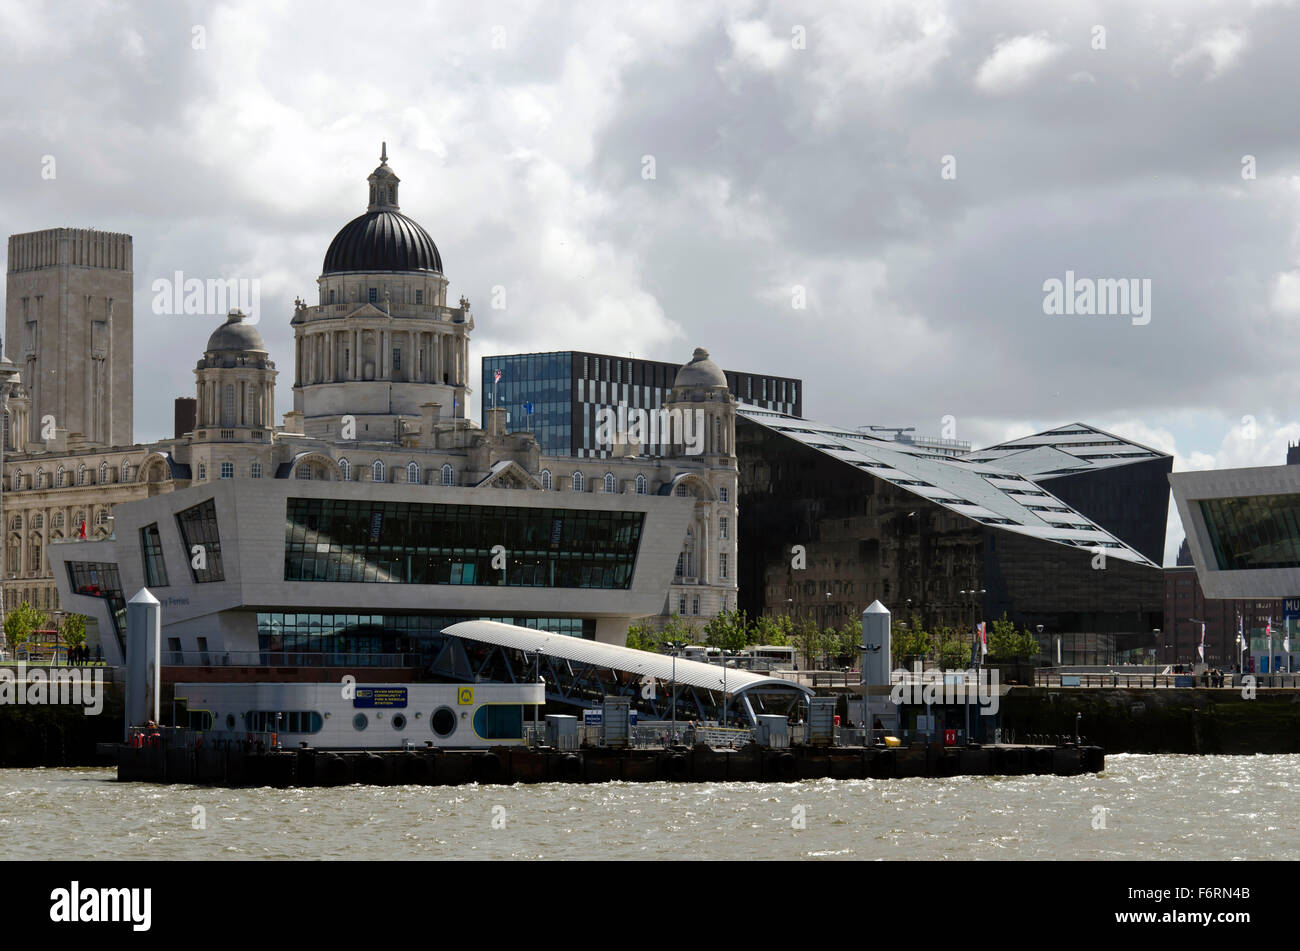 The ferry terminal and modern museum on the seafront in Liverpool, England. - Stock Image